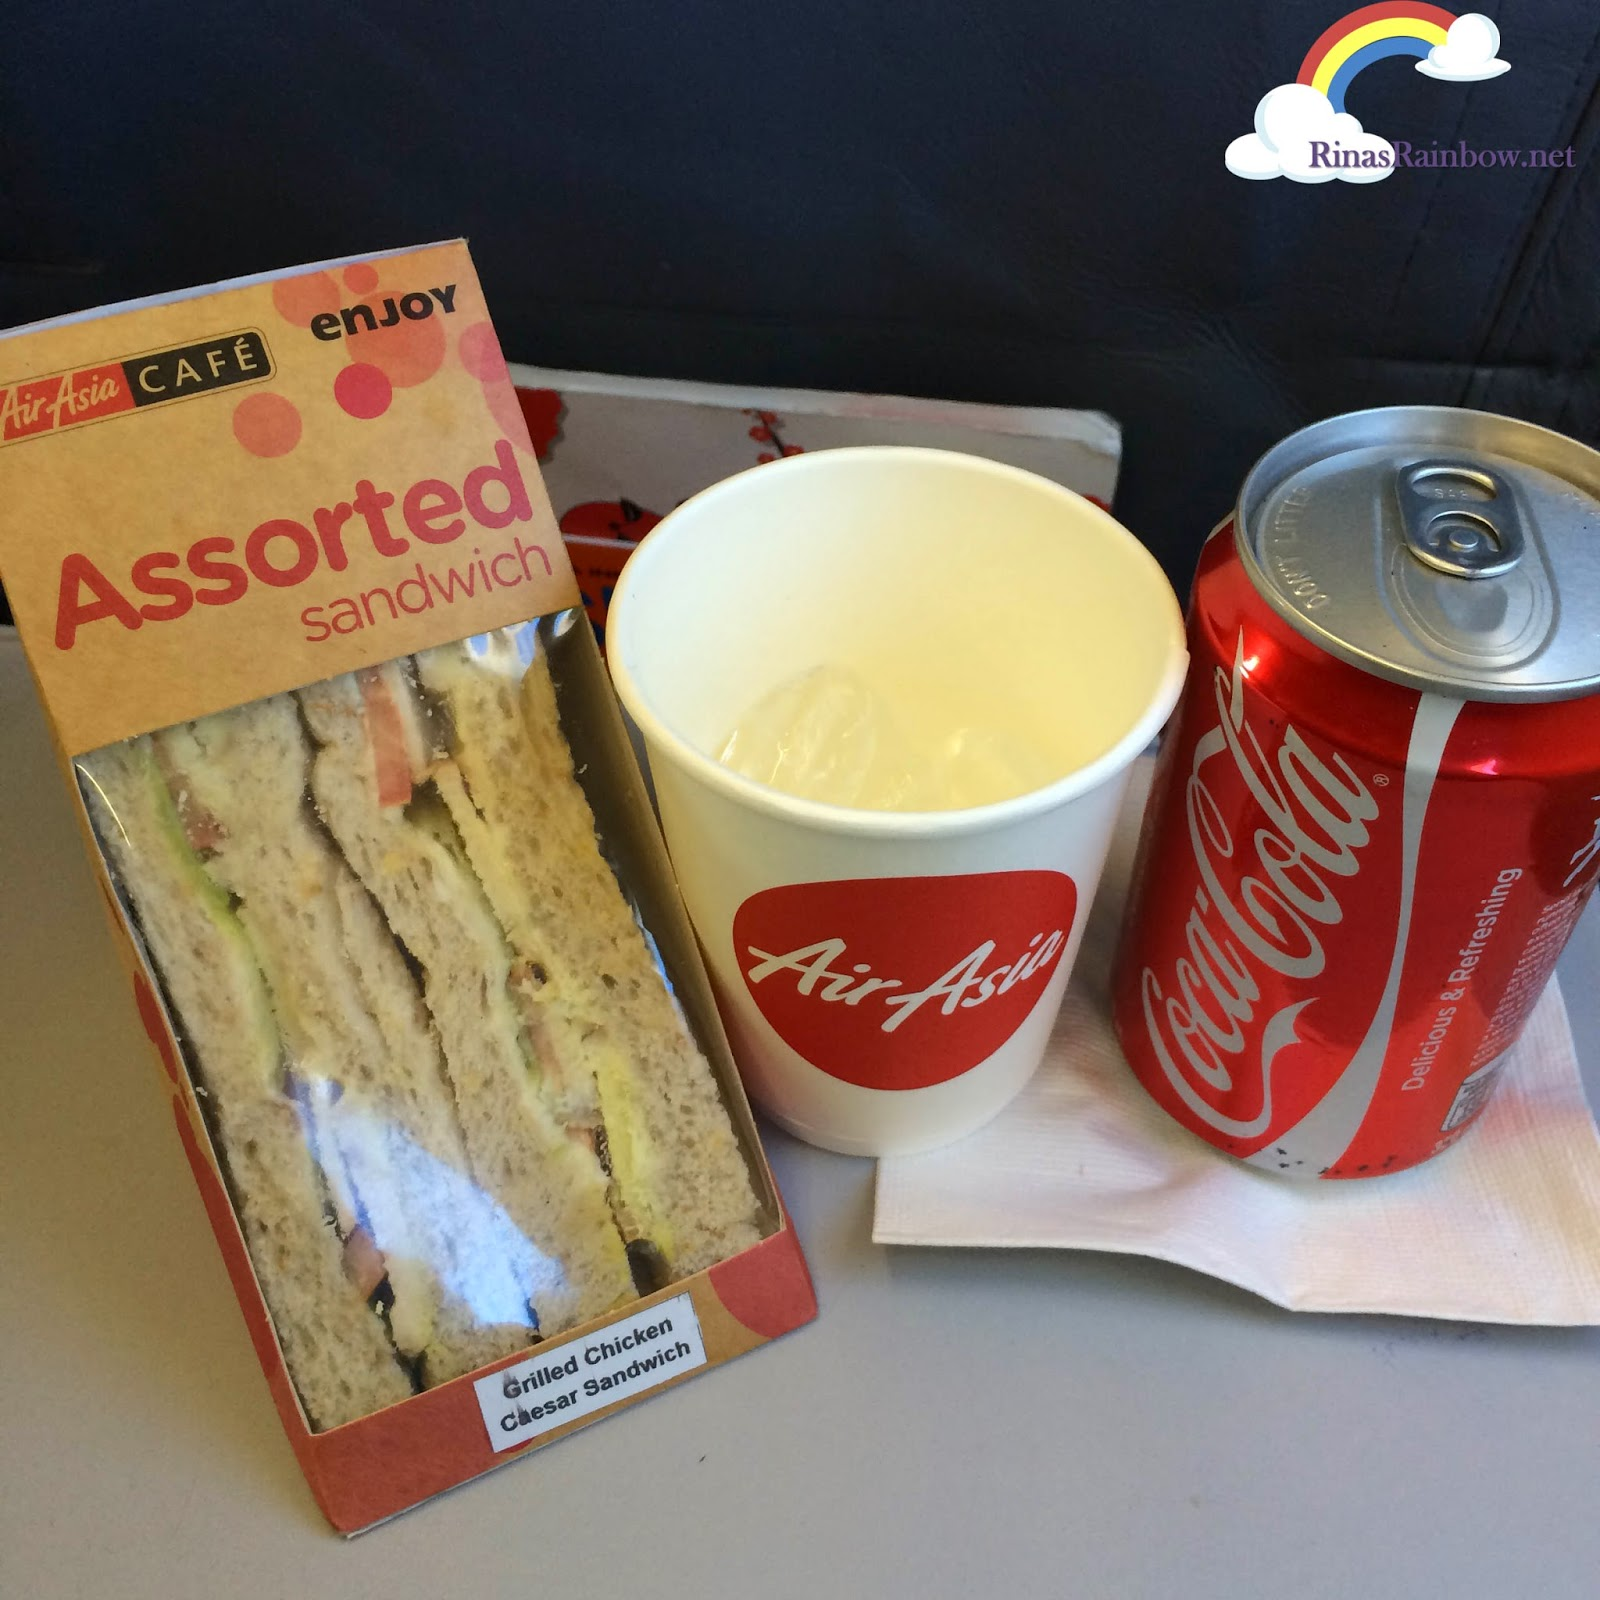 air asia cafe snacks